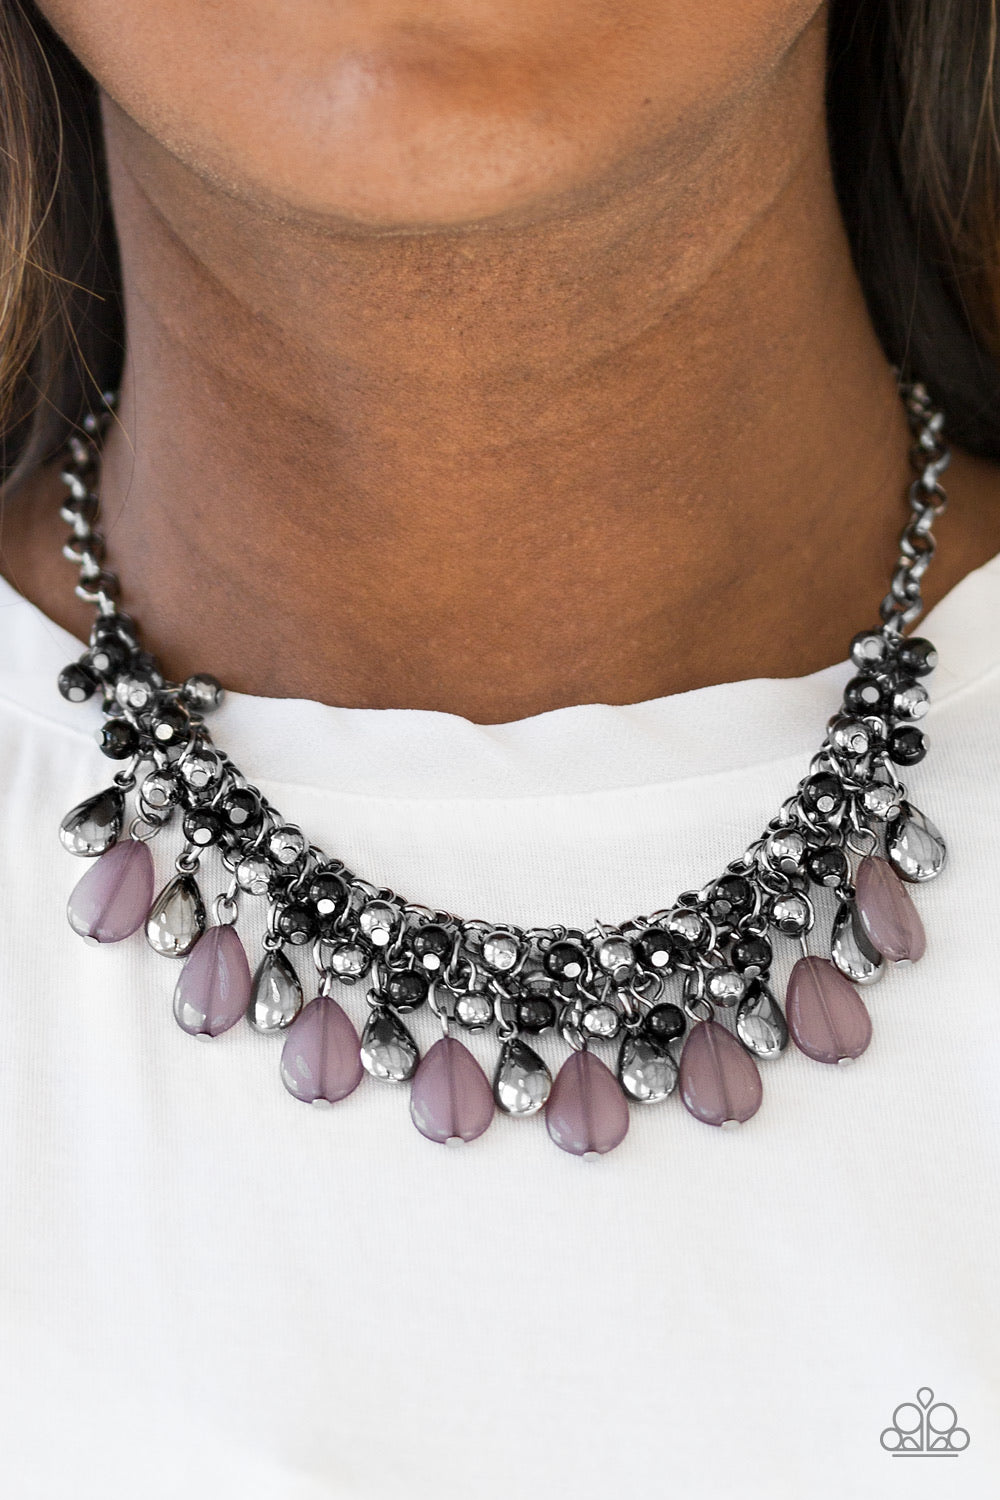 Diva Attitude Black Paparazzi Necklace - JewelTonez Jewelry